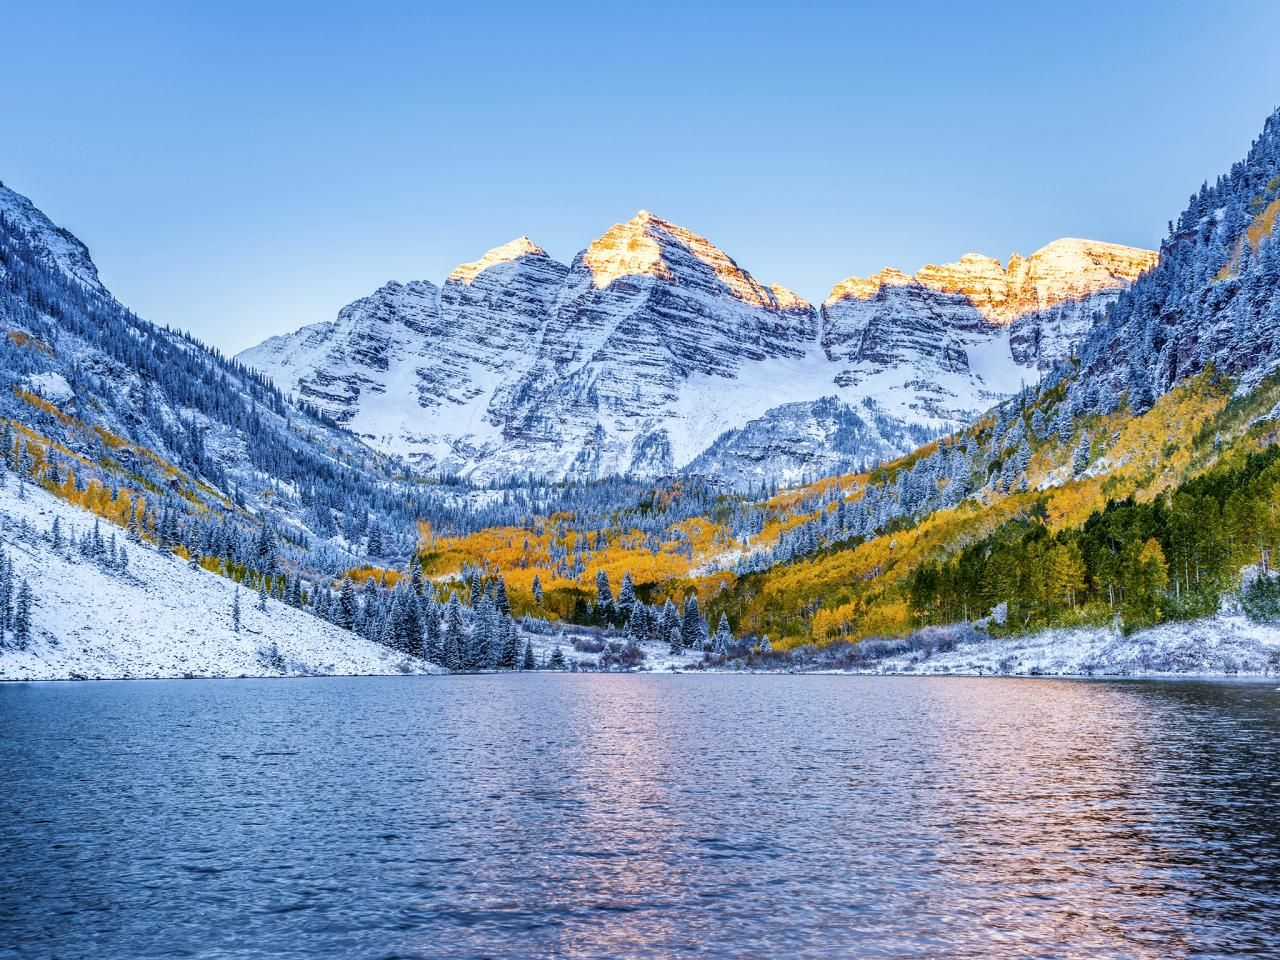 Aspen Has A Well Earned Retion As Glitzy Resort Town Por With Spenders